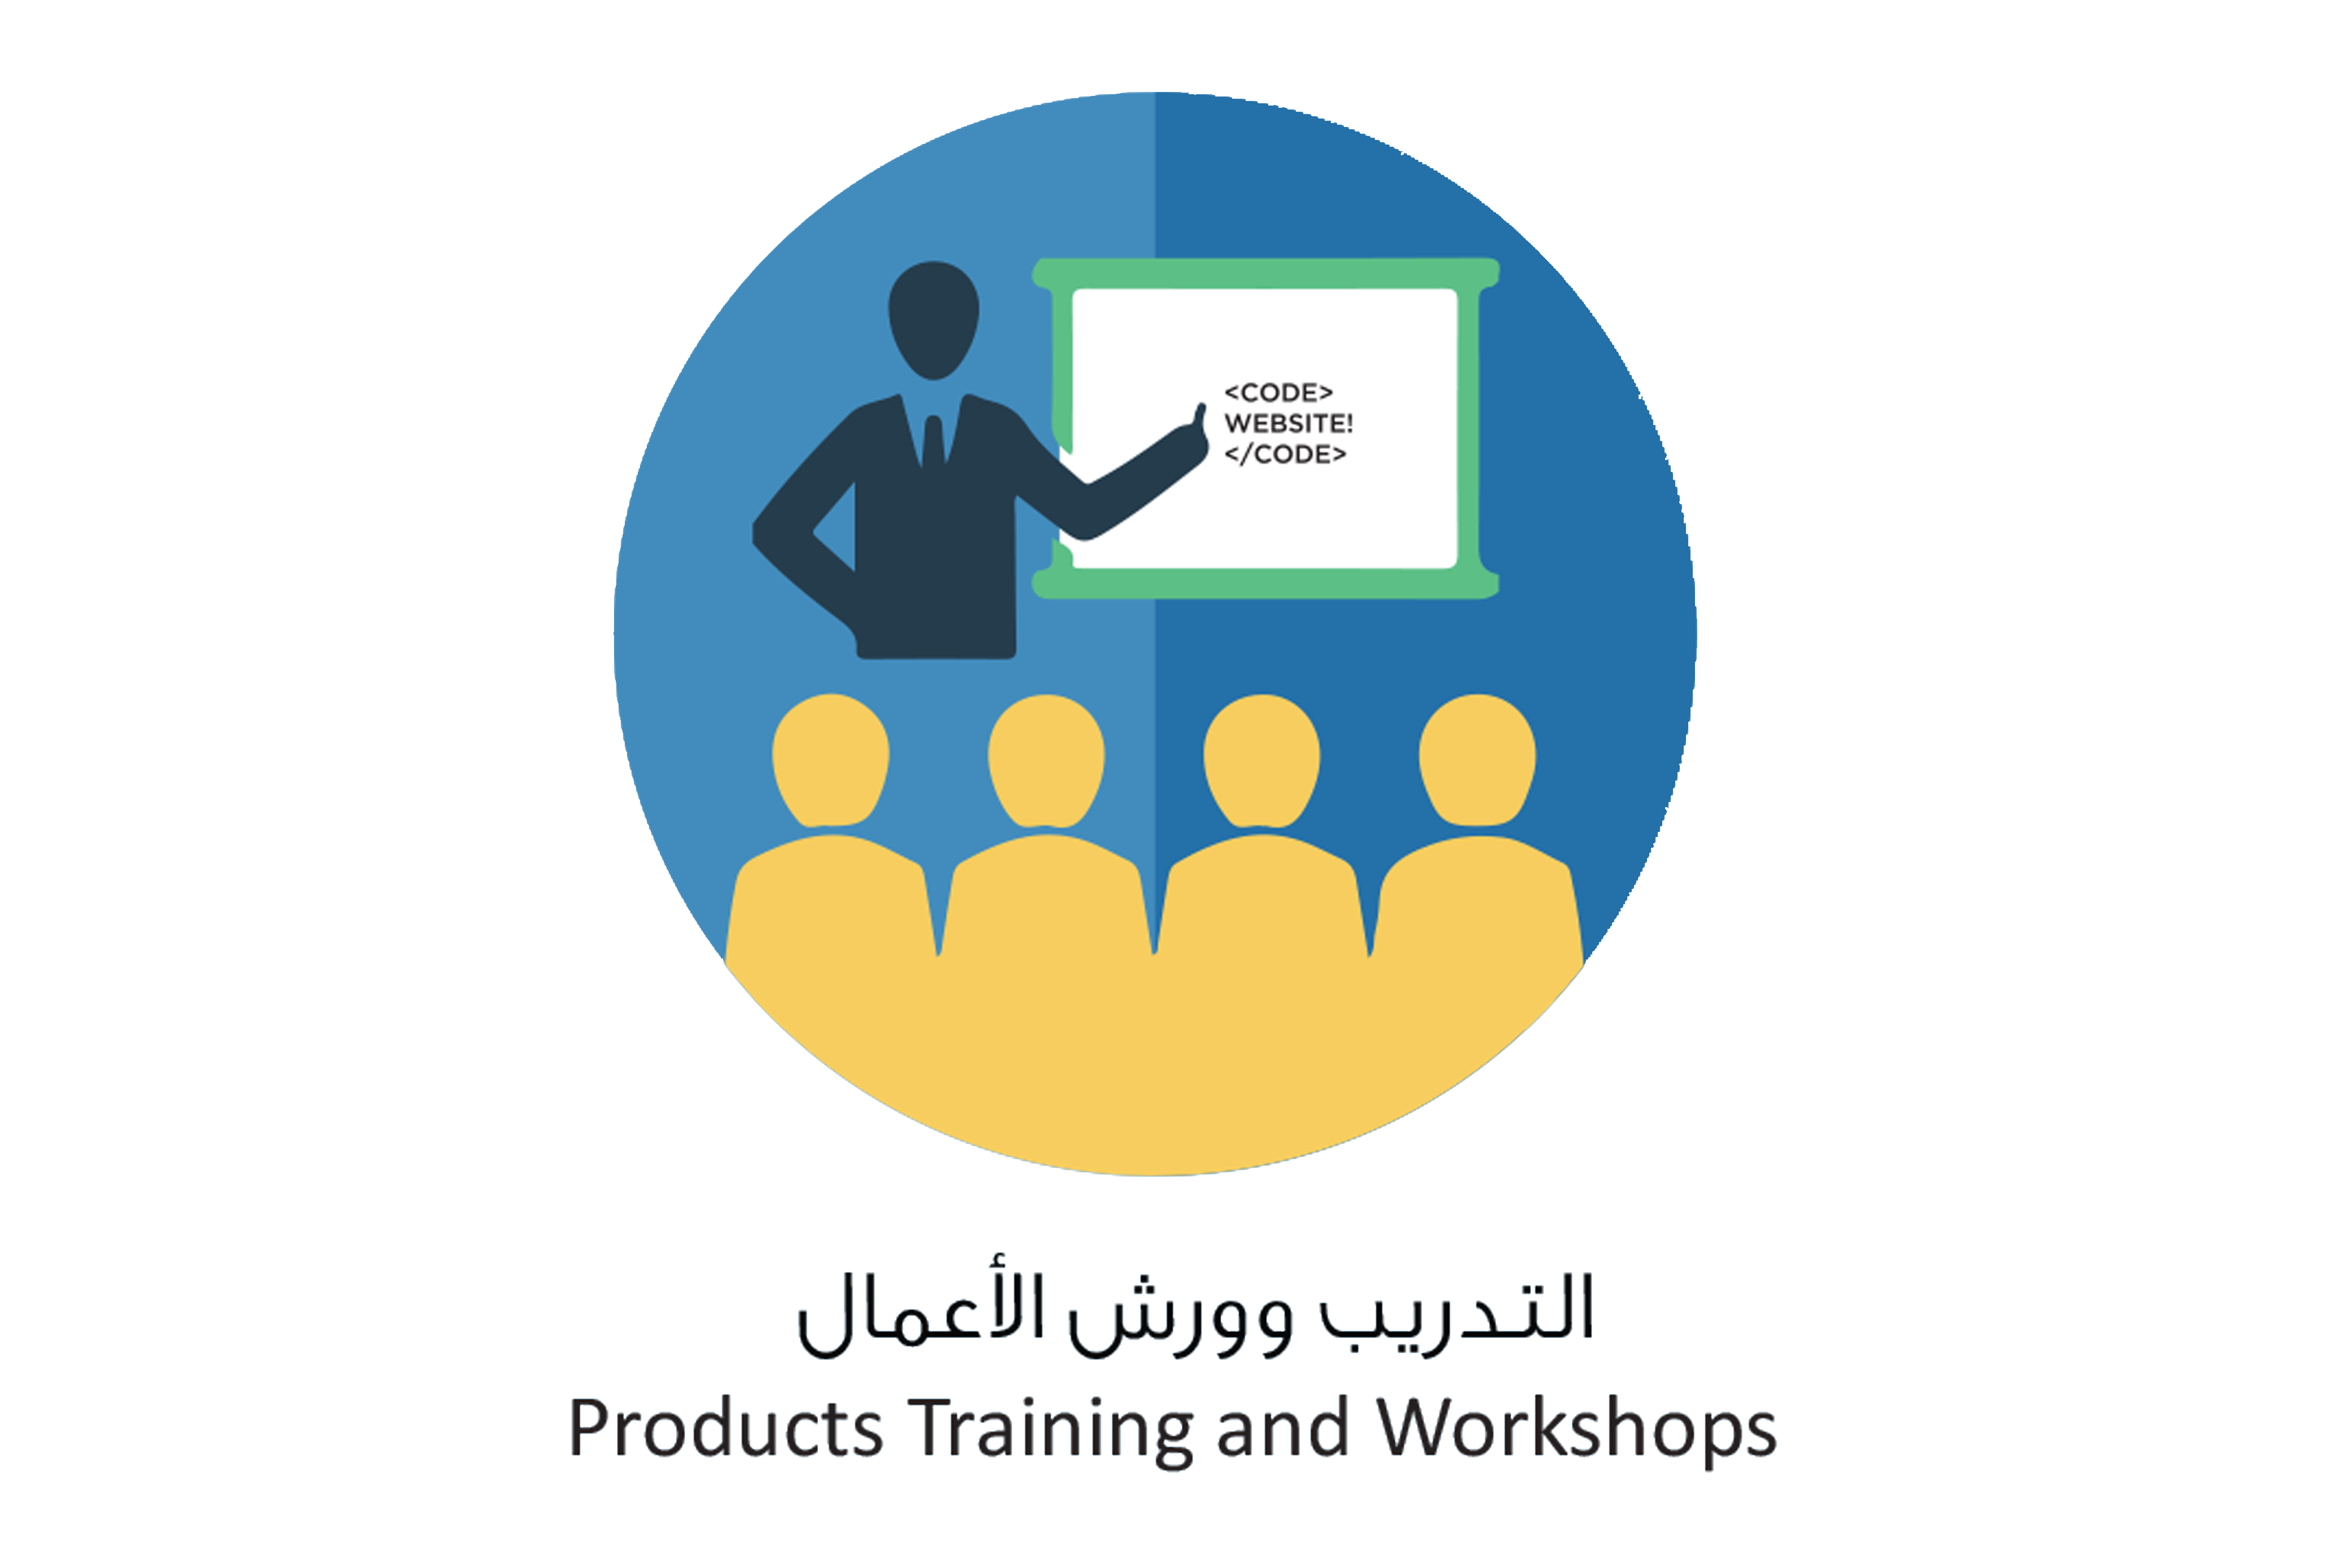 Training and IT Workshops